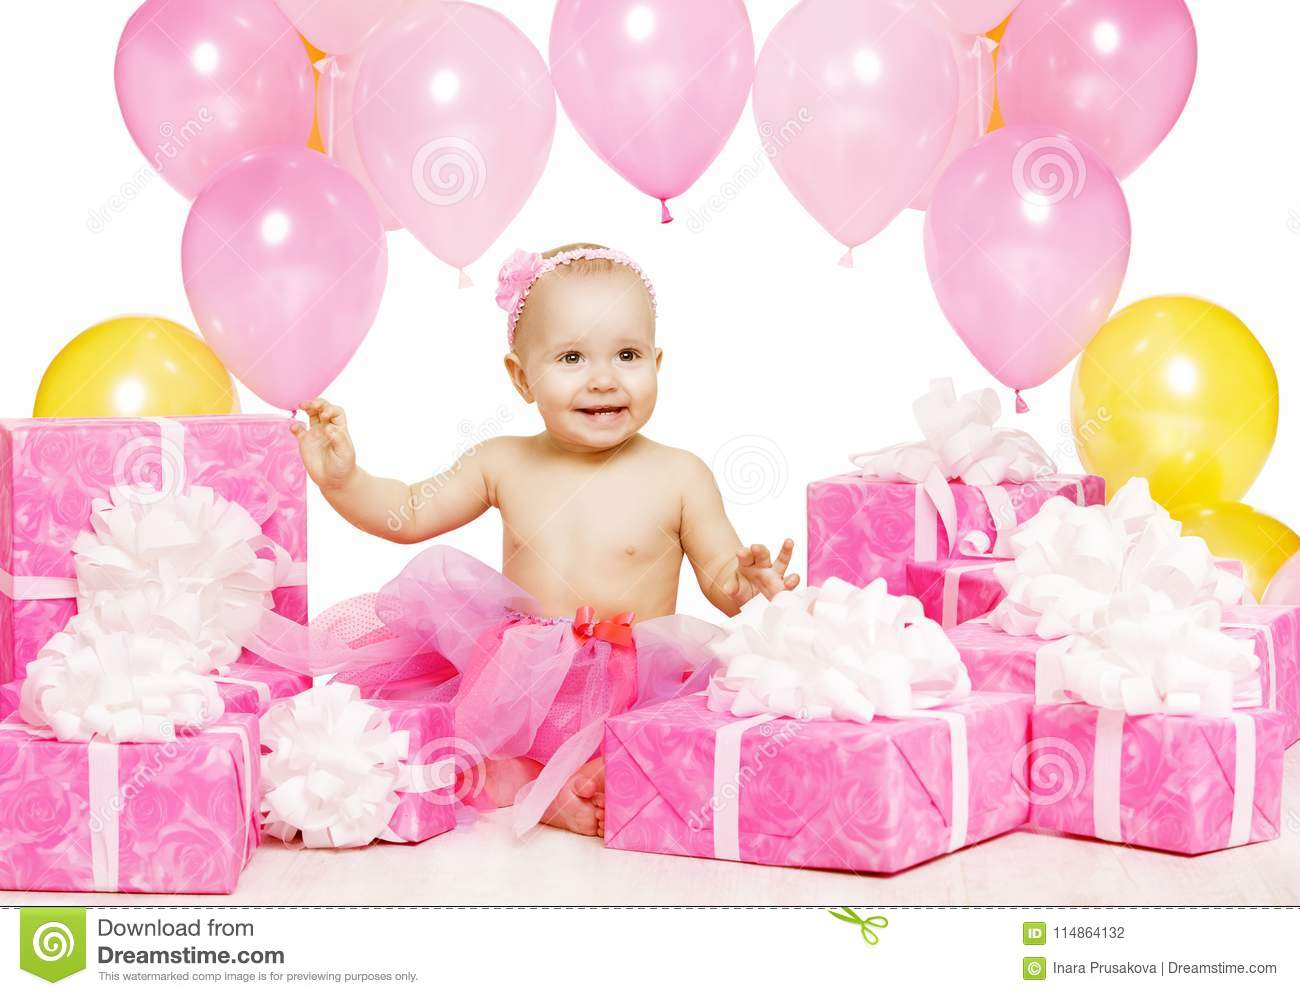 Baby Girl With Pink Present Gift Boxes Kid Celebrating Birthday Happy Child One Year Old Sitting In Balloons